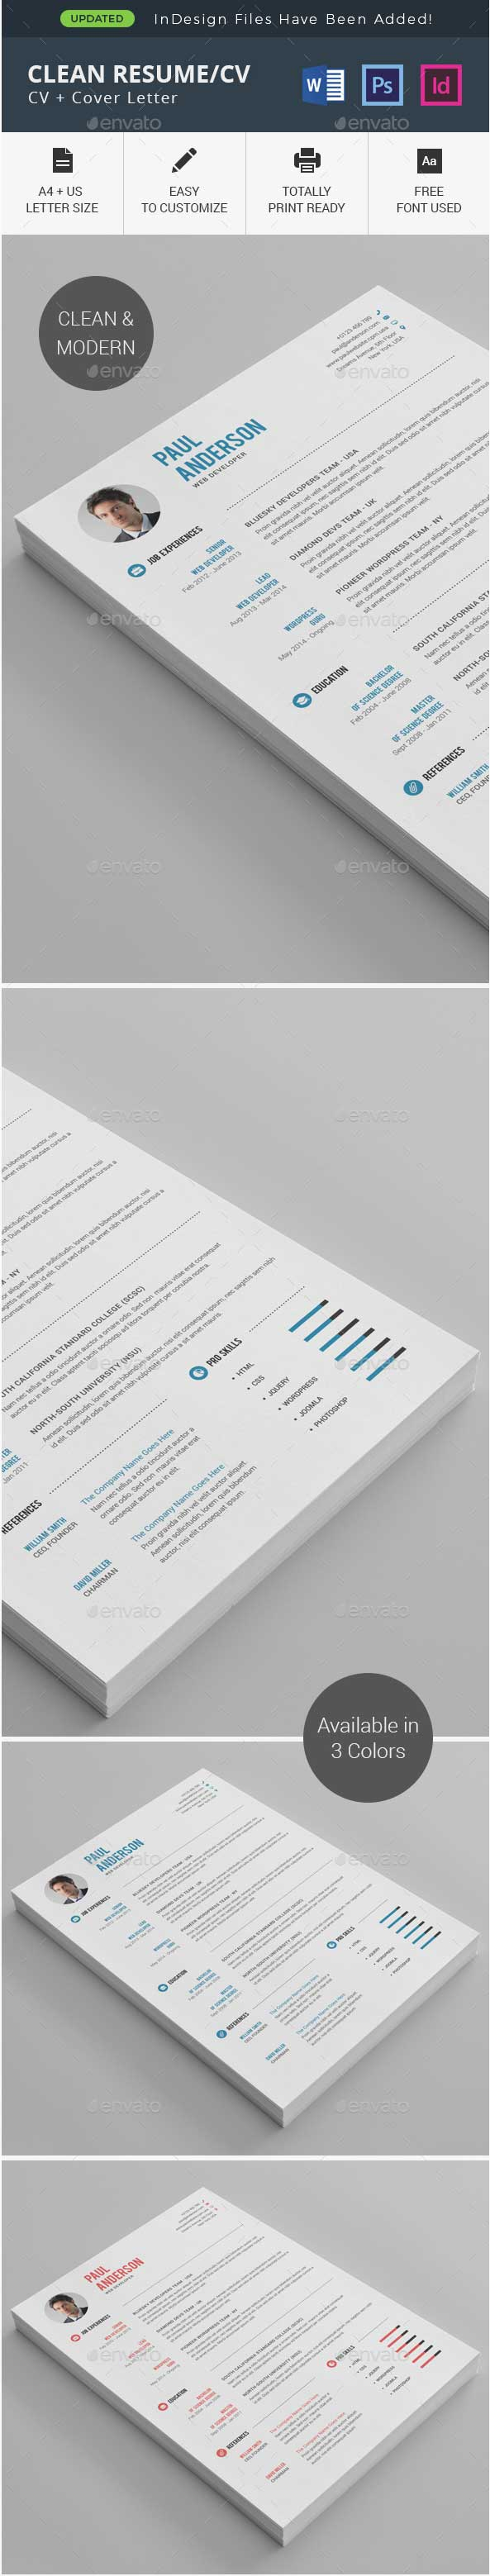 professional-resume-cv-indesign-photoshop-psd-ms-word-template-download